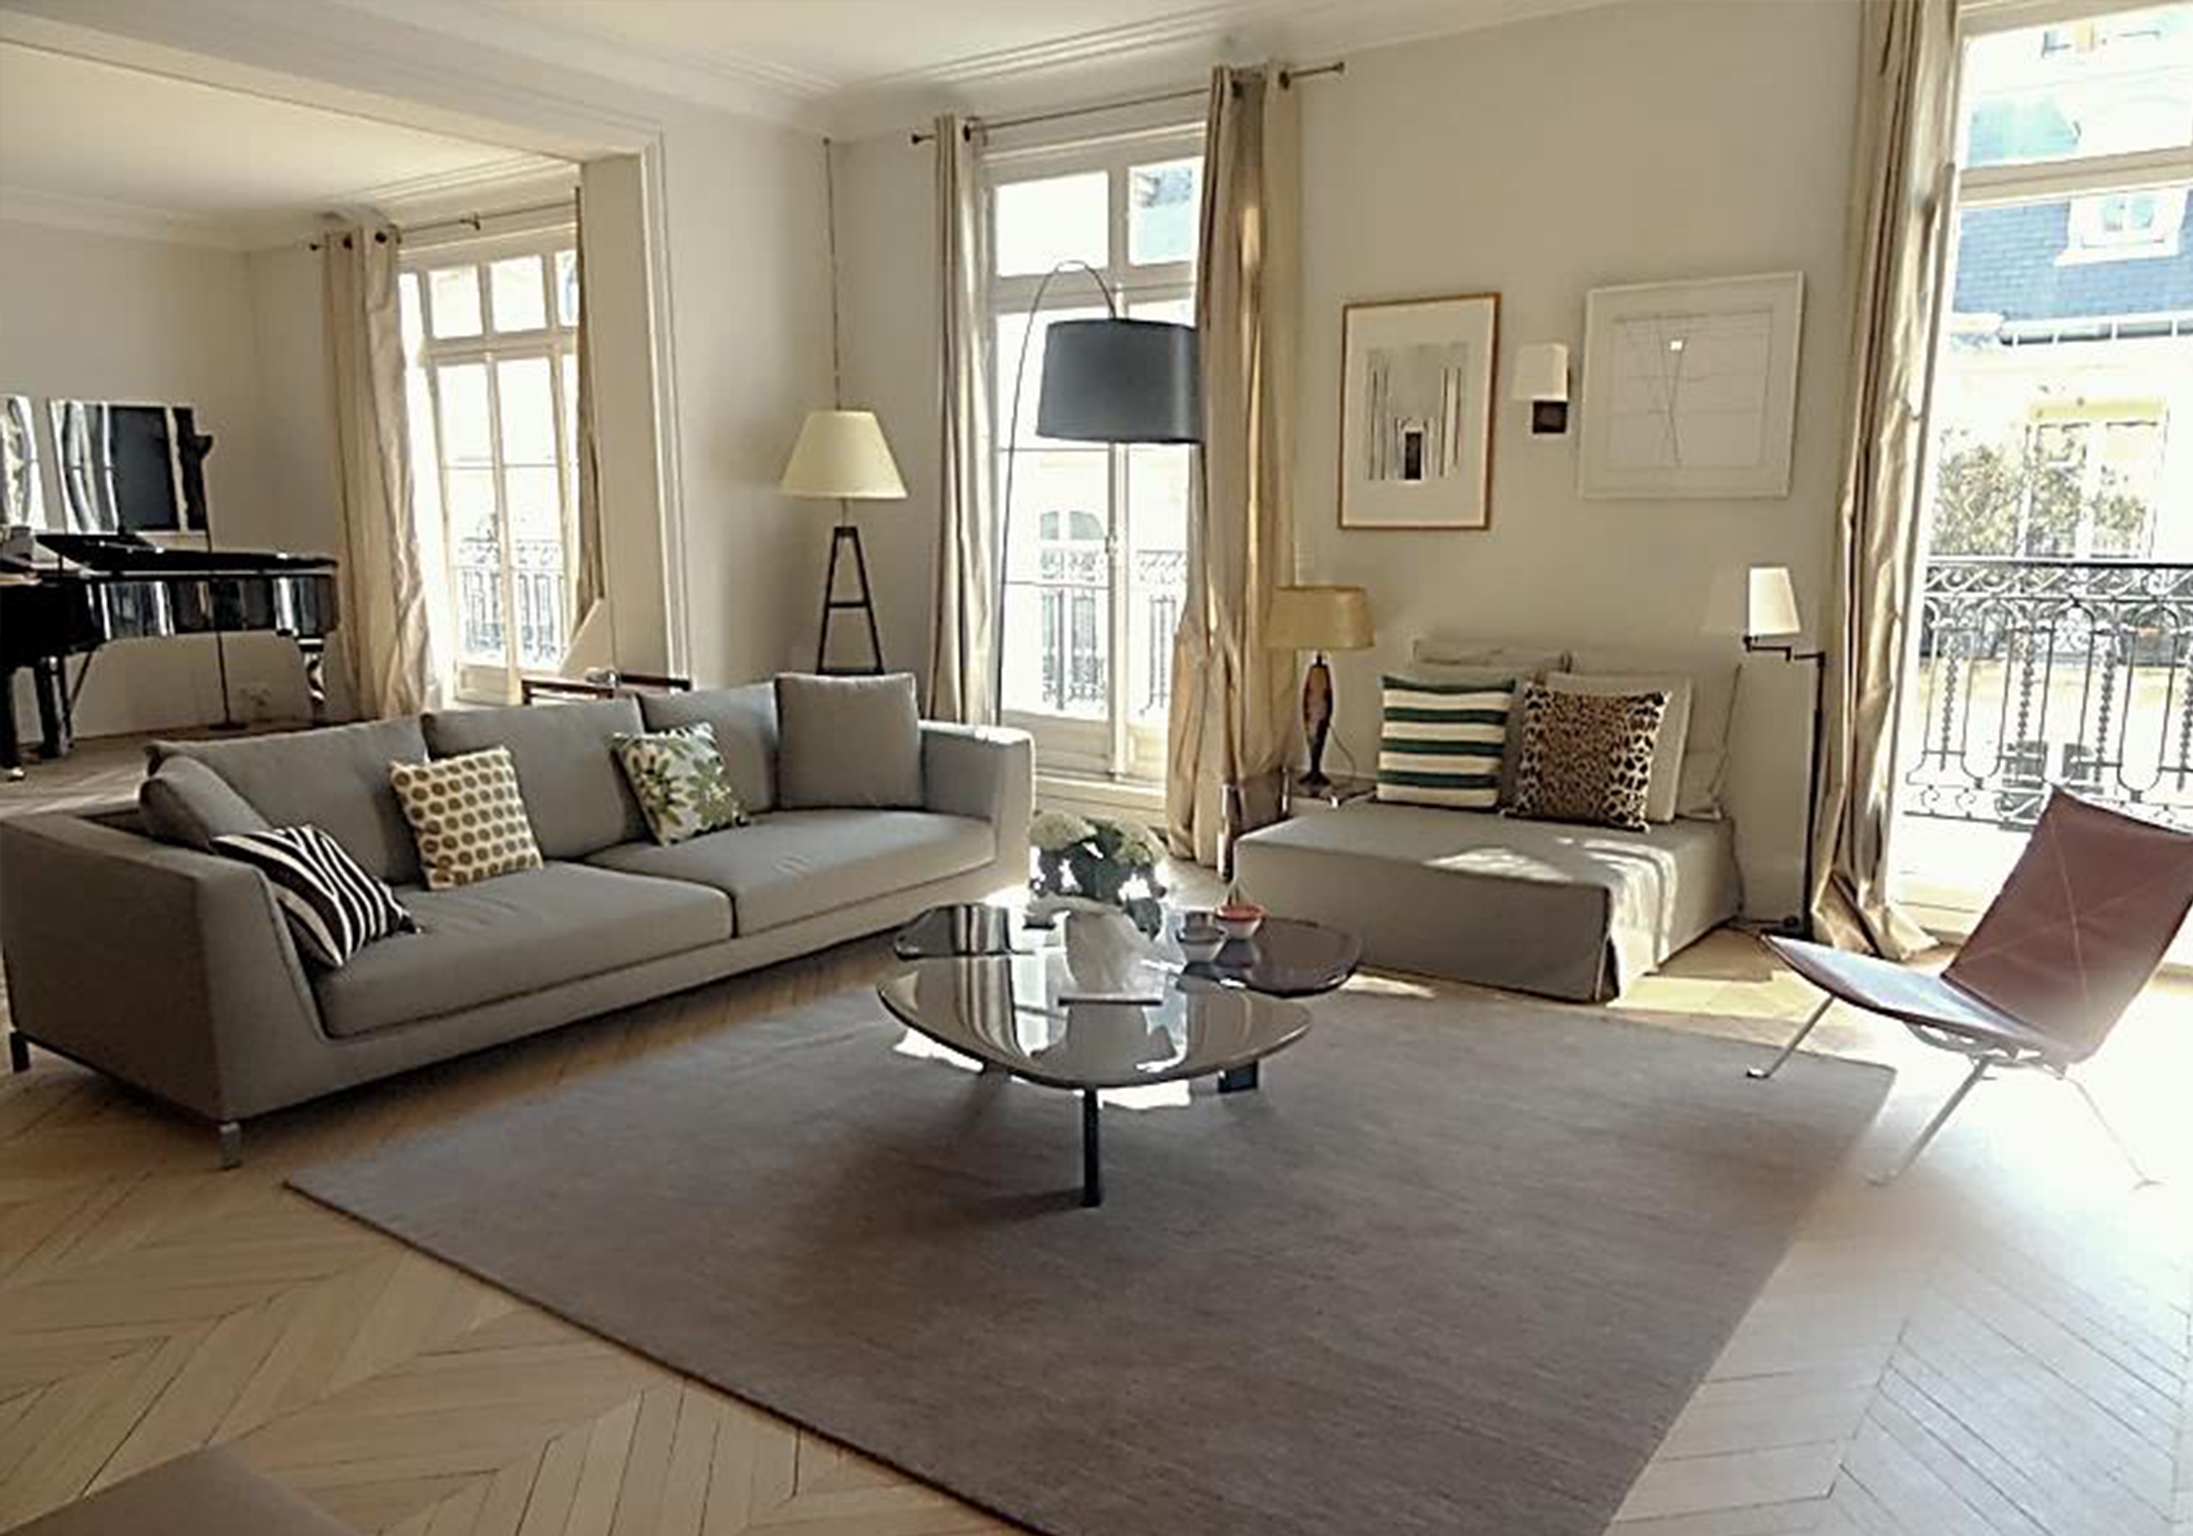 Interieur singulier appartement paris 16 for Deco rideaux salon contemporain